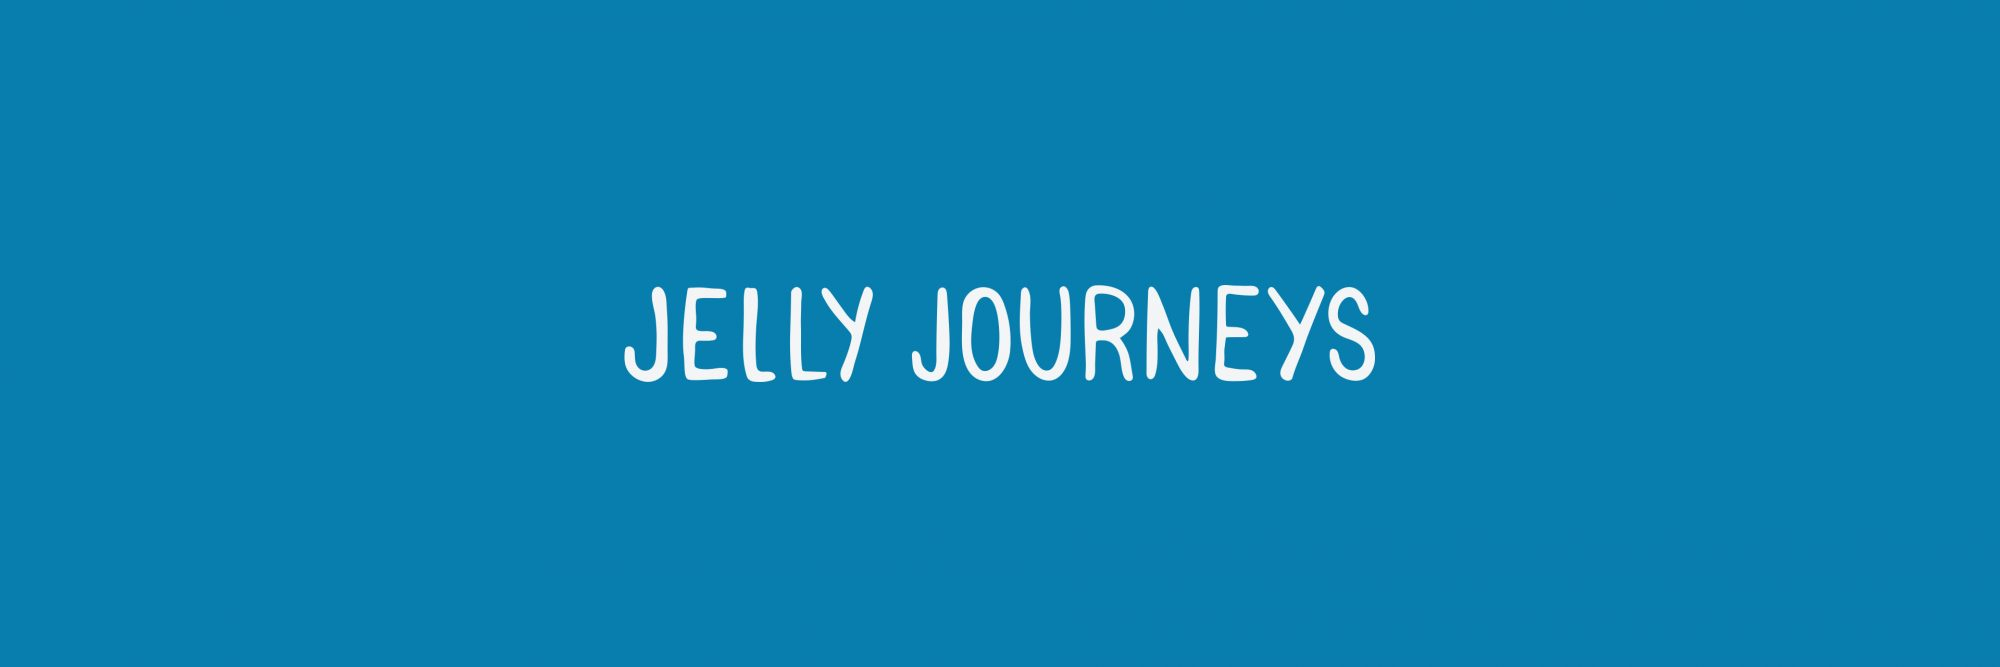 Introducing Jelly Journeys!